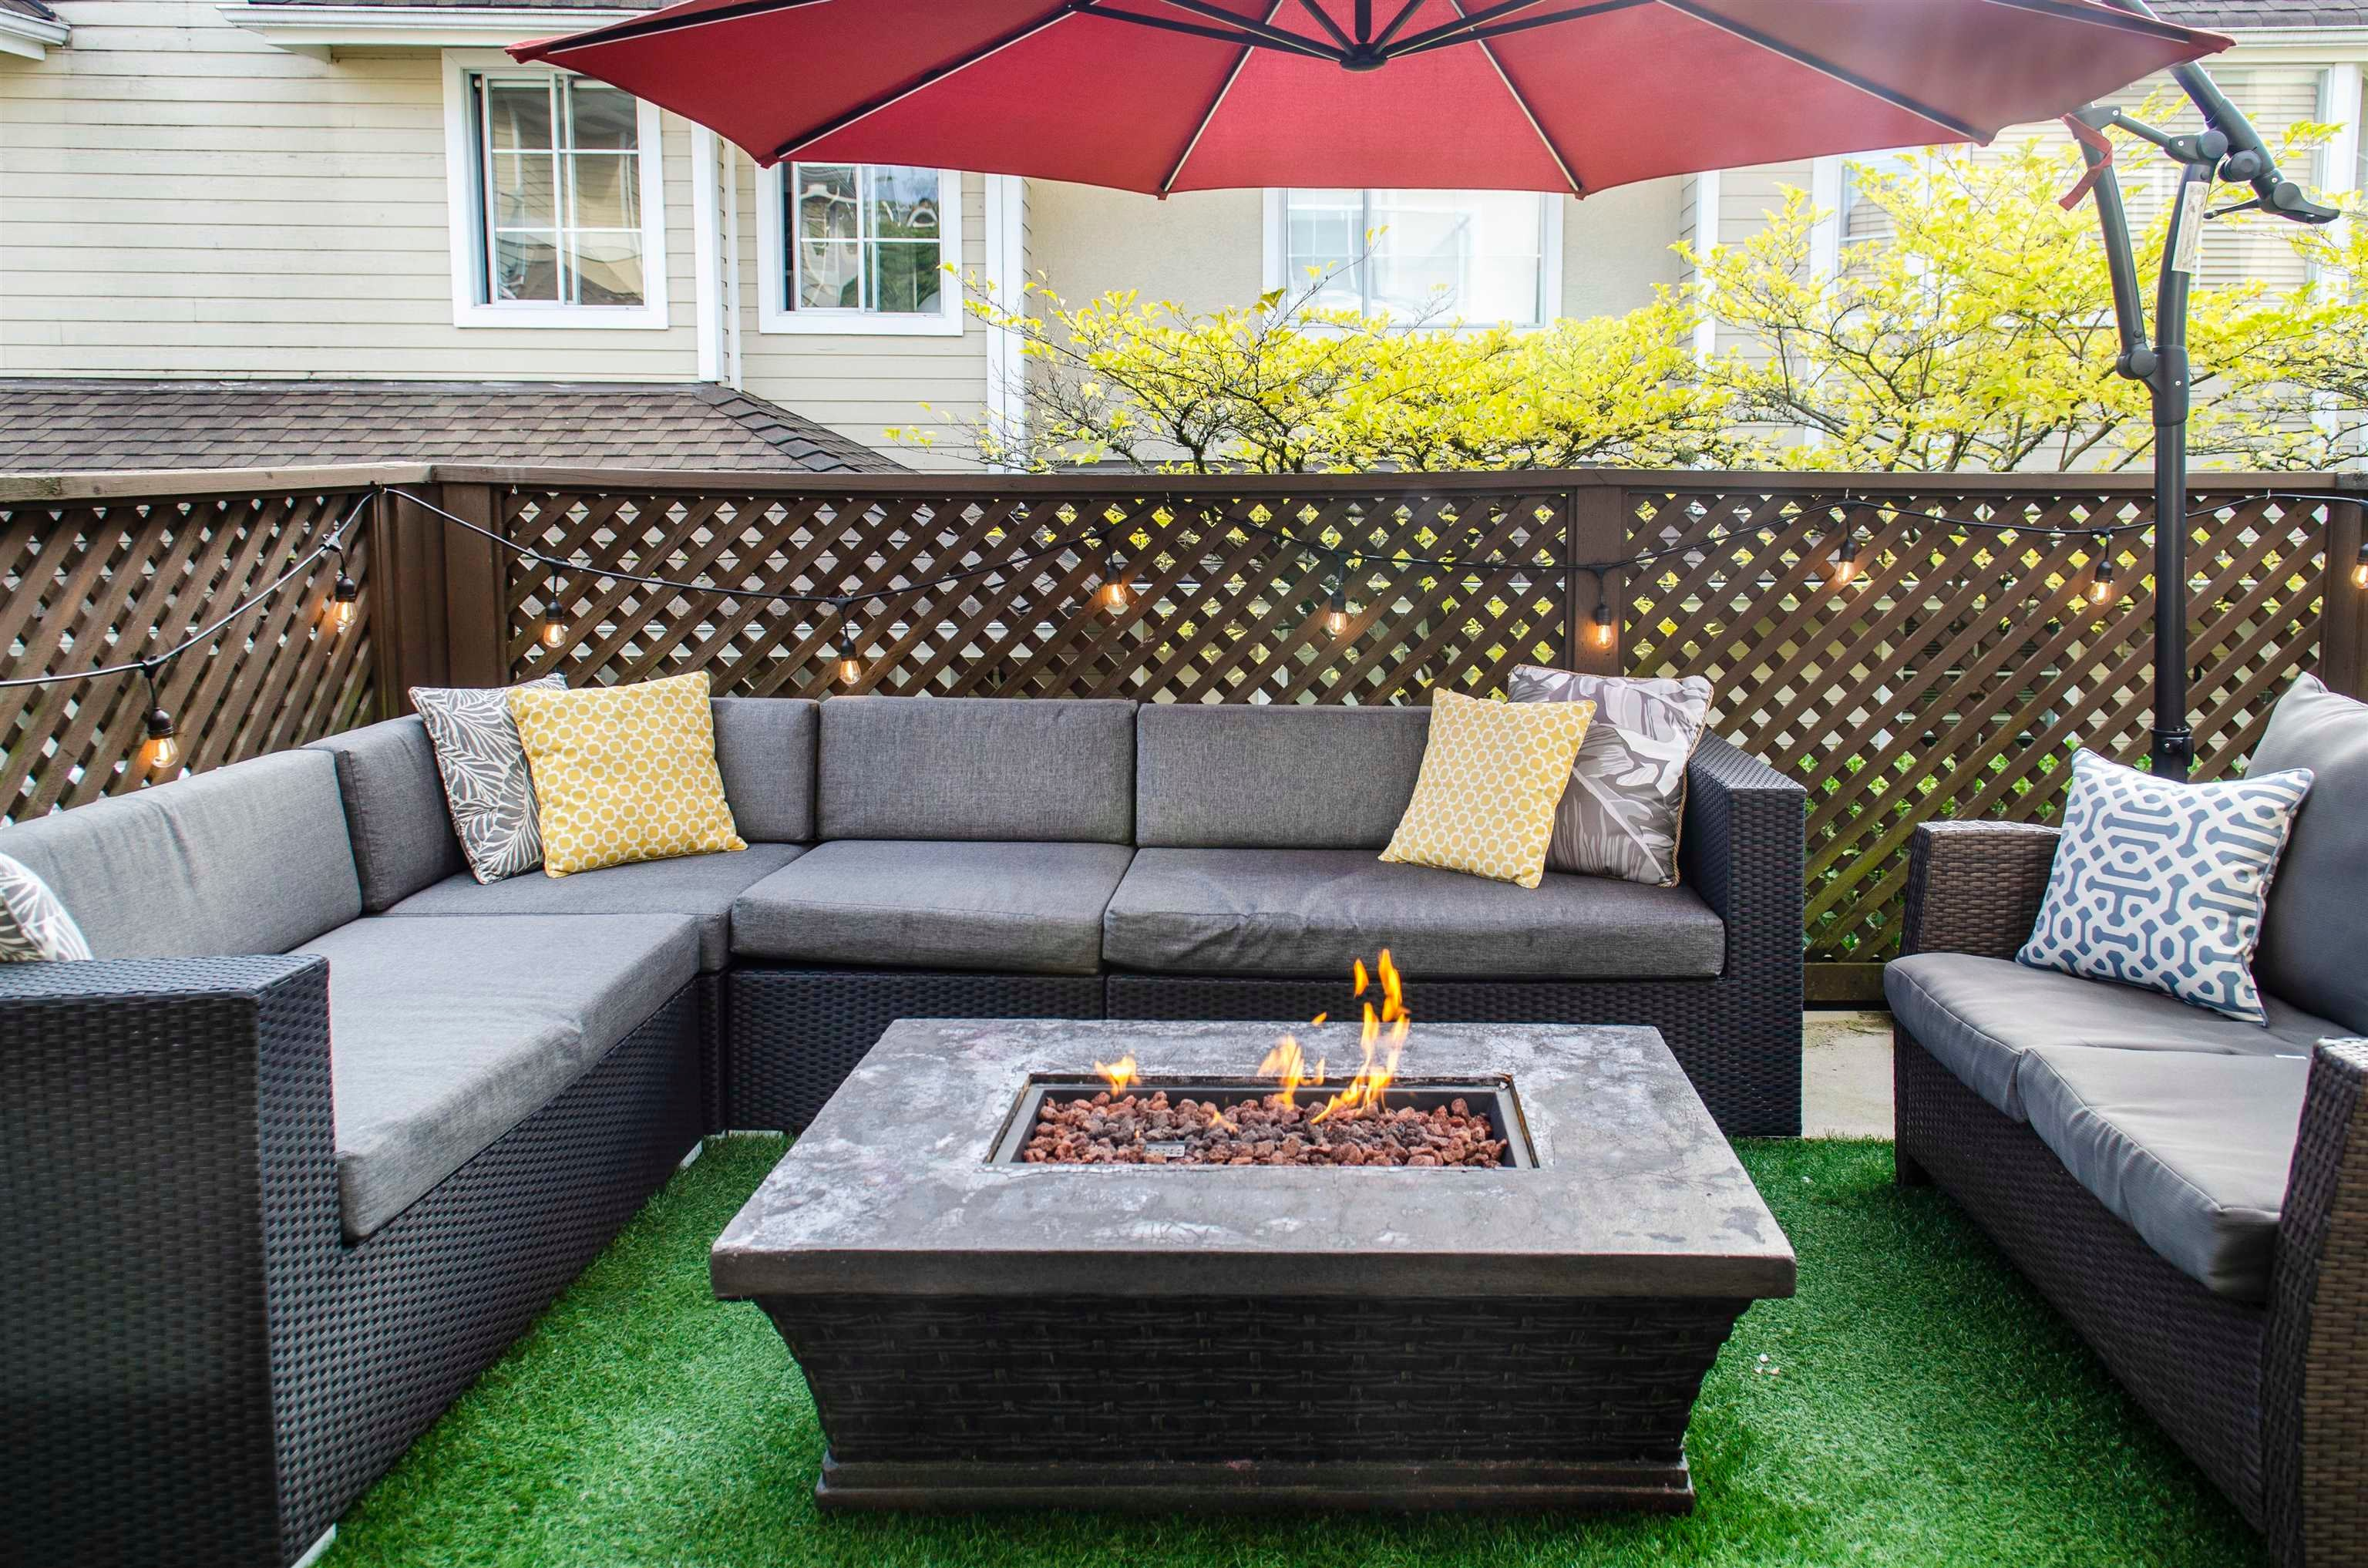 4 249 E 4TH STREET - Lower Lonsdale Townhouse for sale, 4 Bedrooms (R2624640) - #1